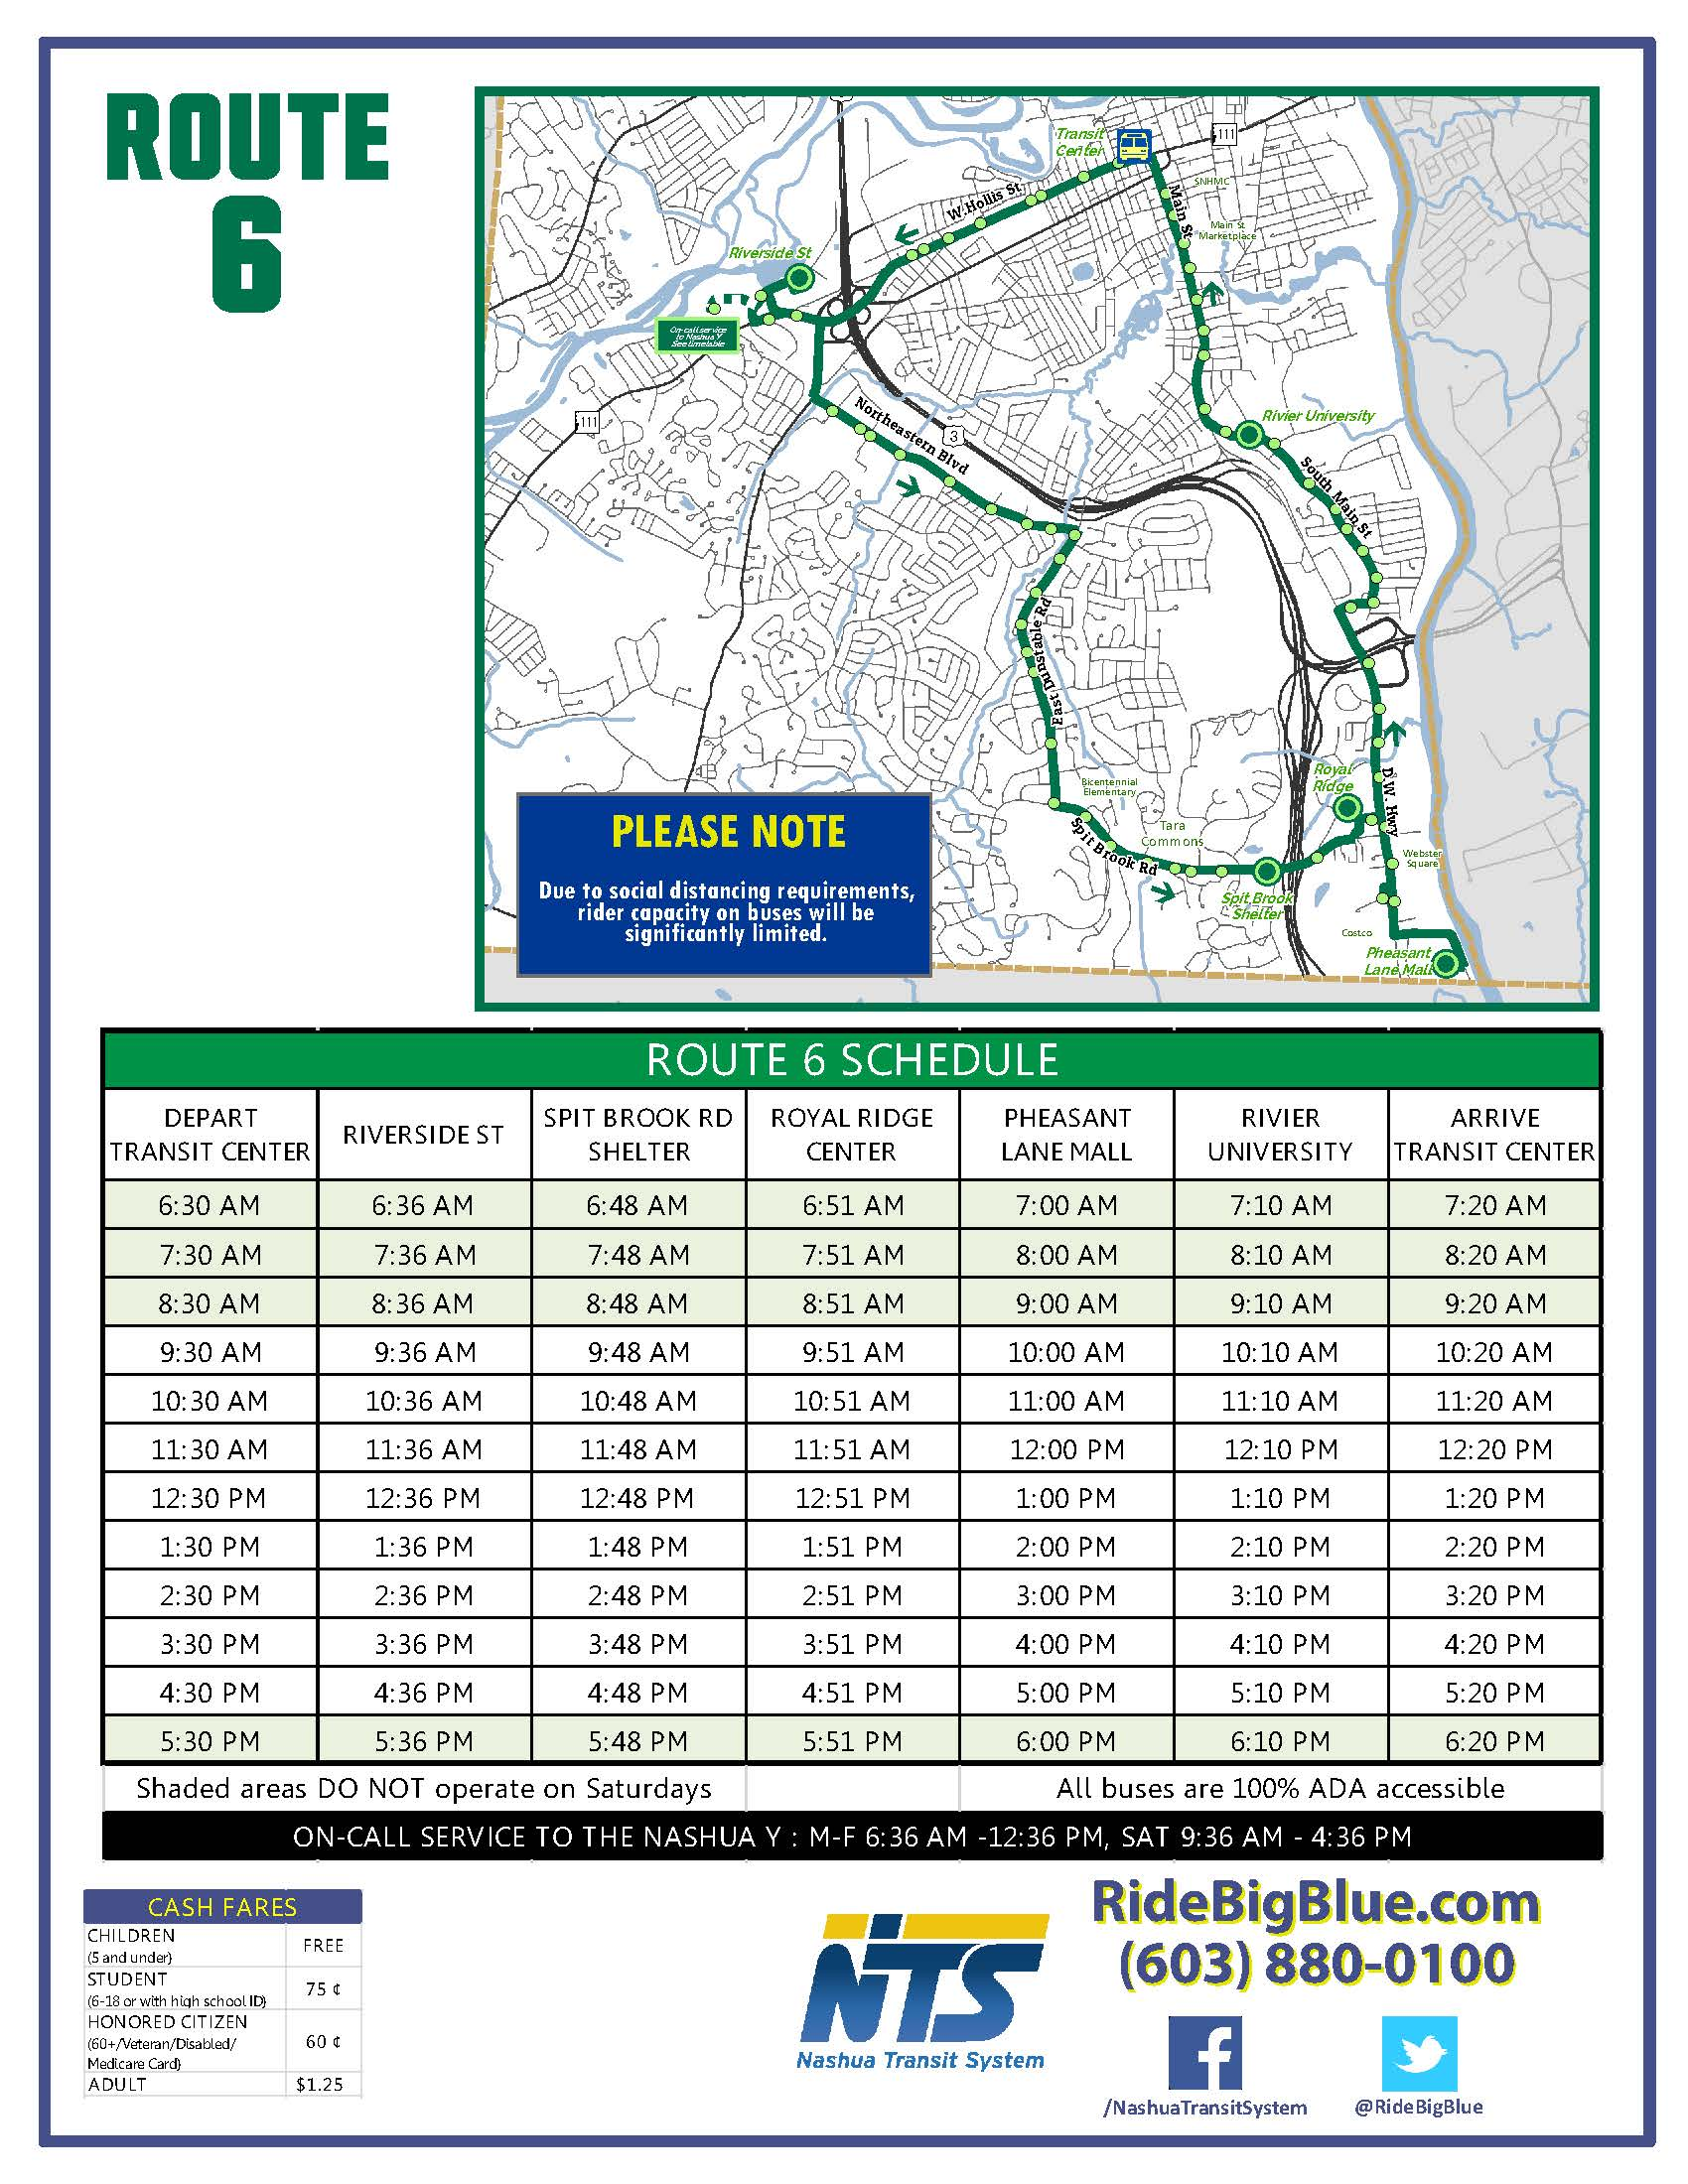 Route 6 Map & Schedule